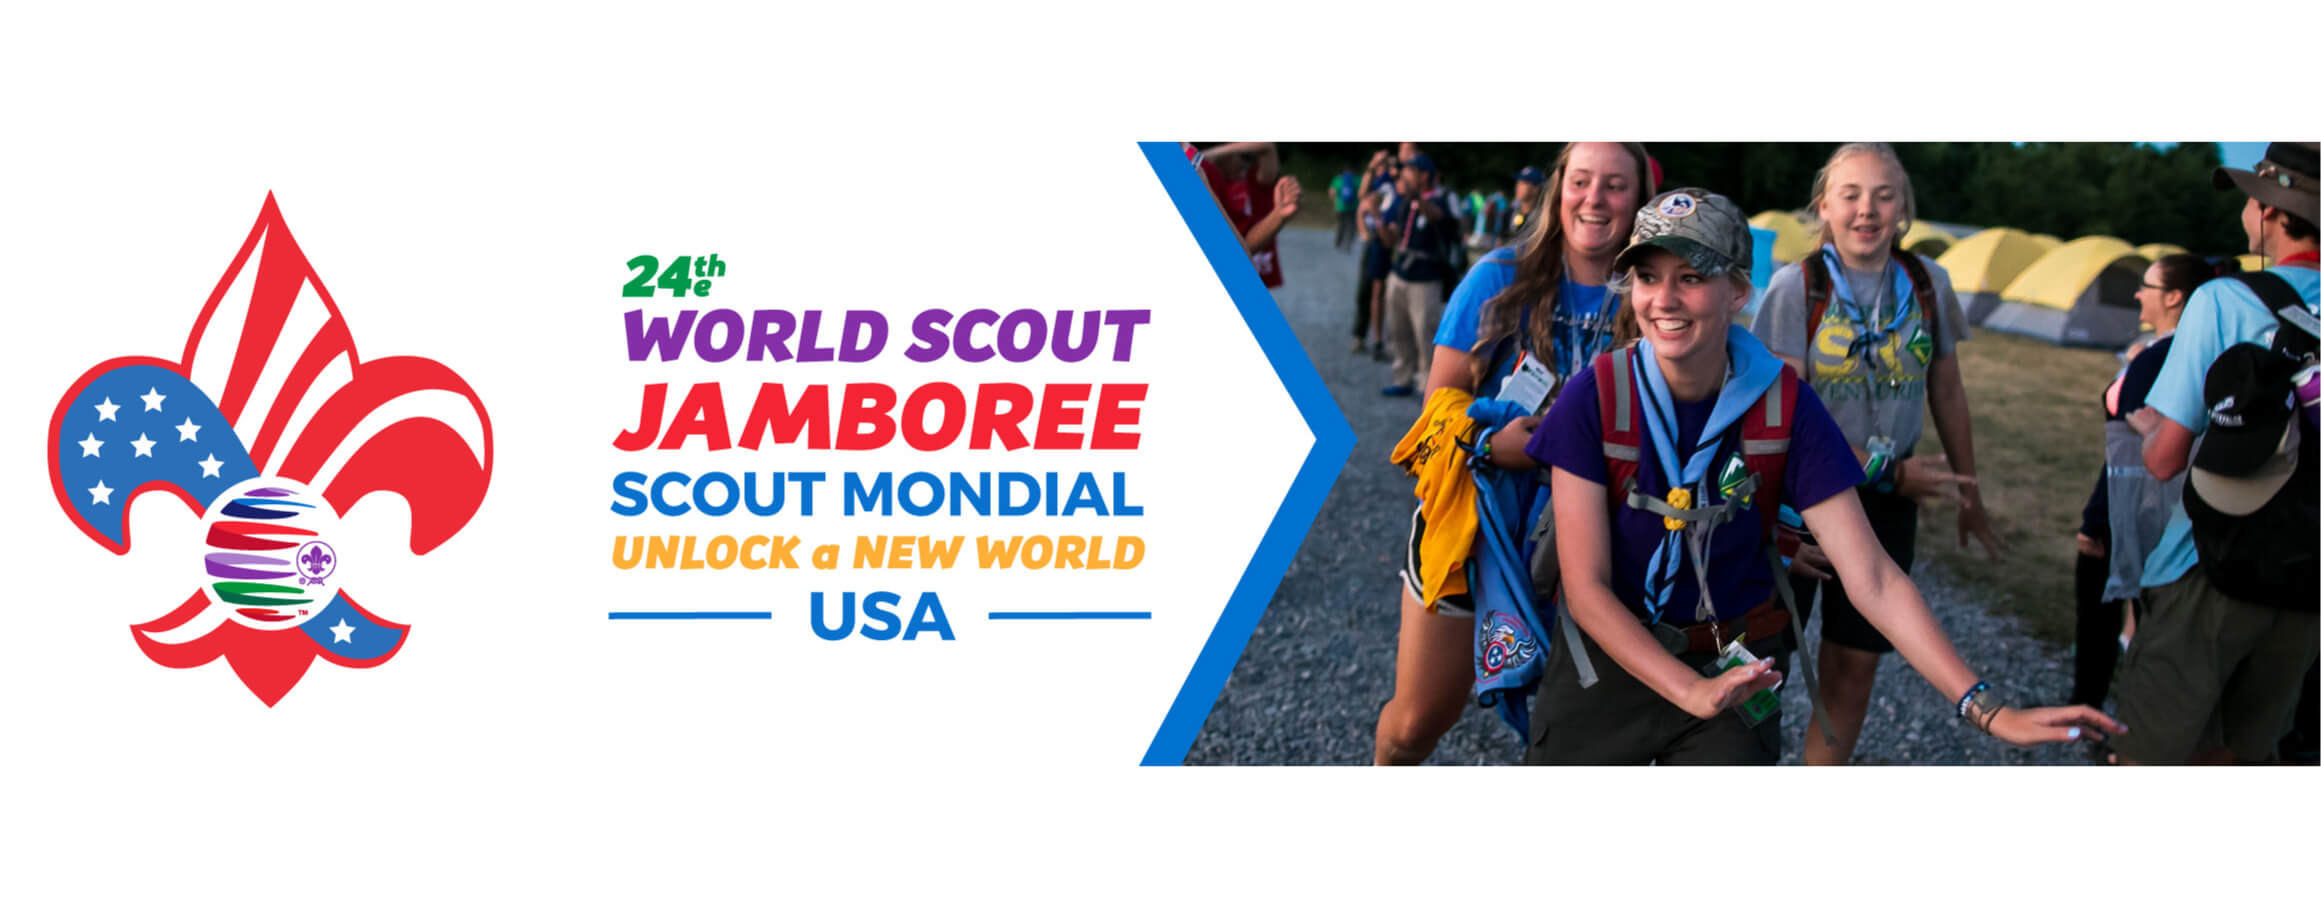 World Scout Jamboree 2019